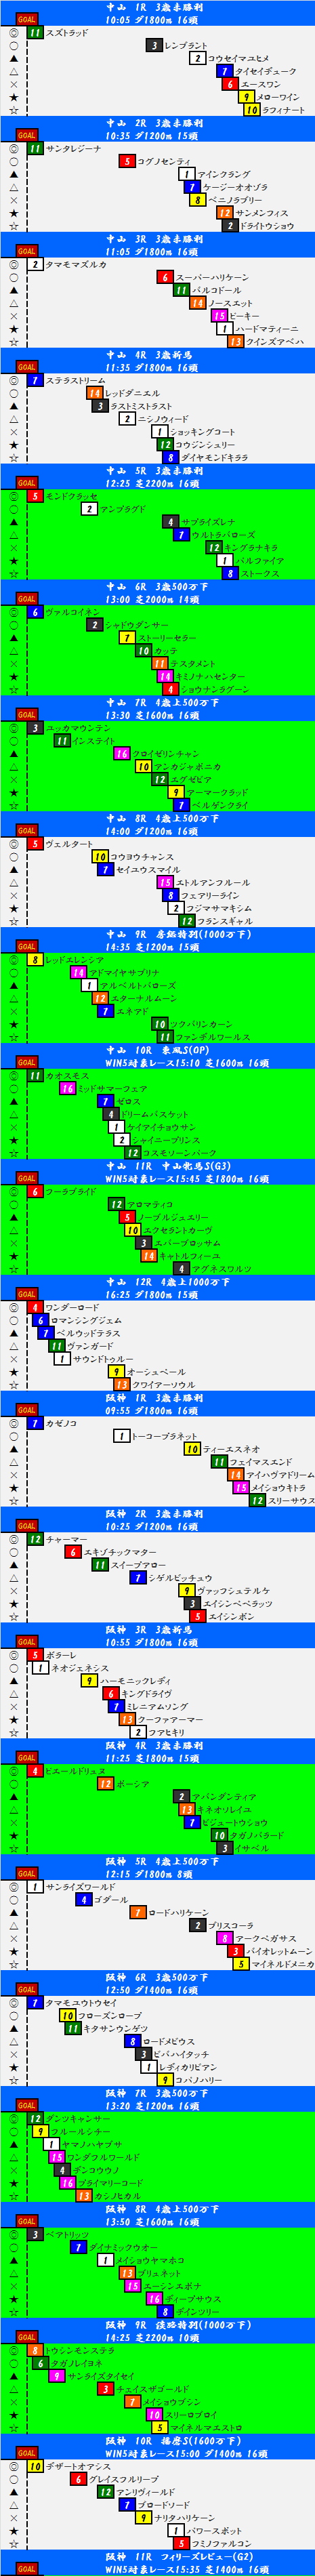 201403161.png